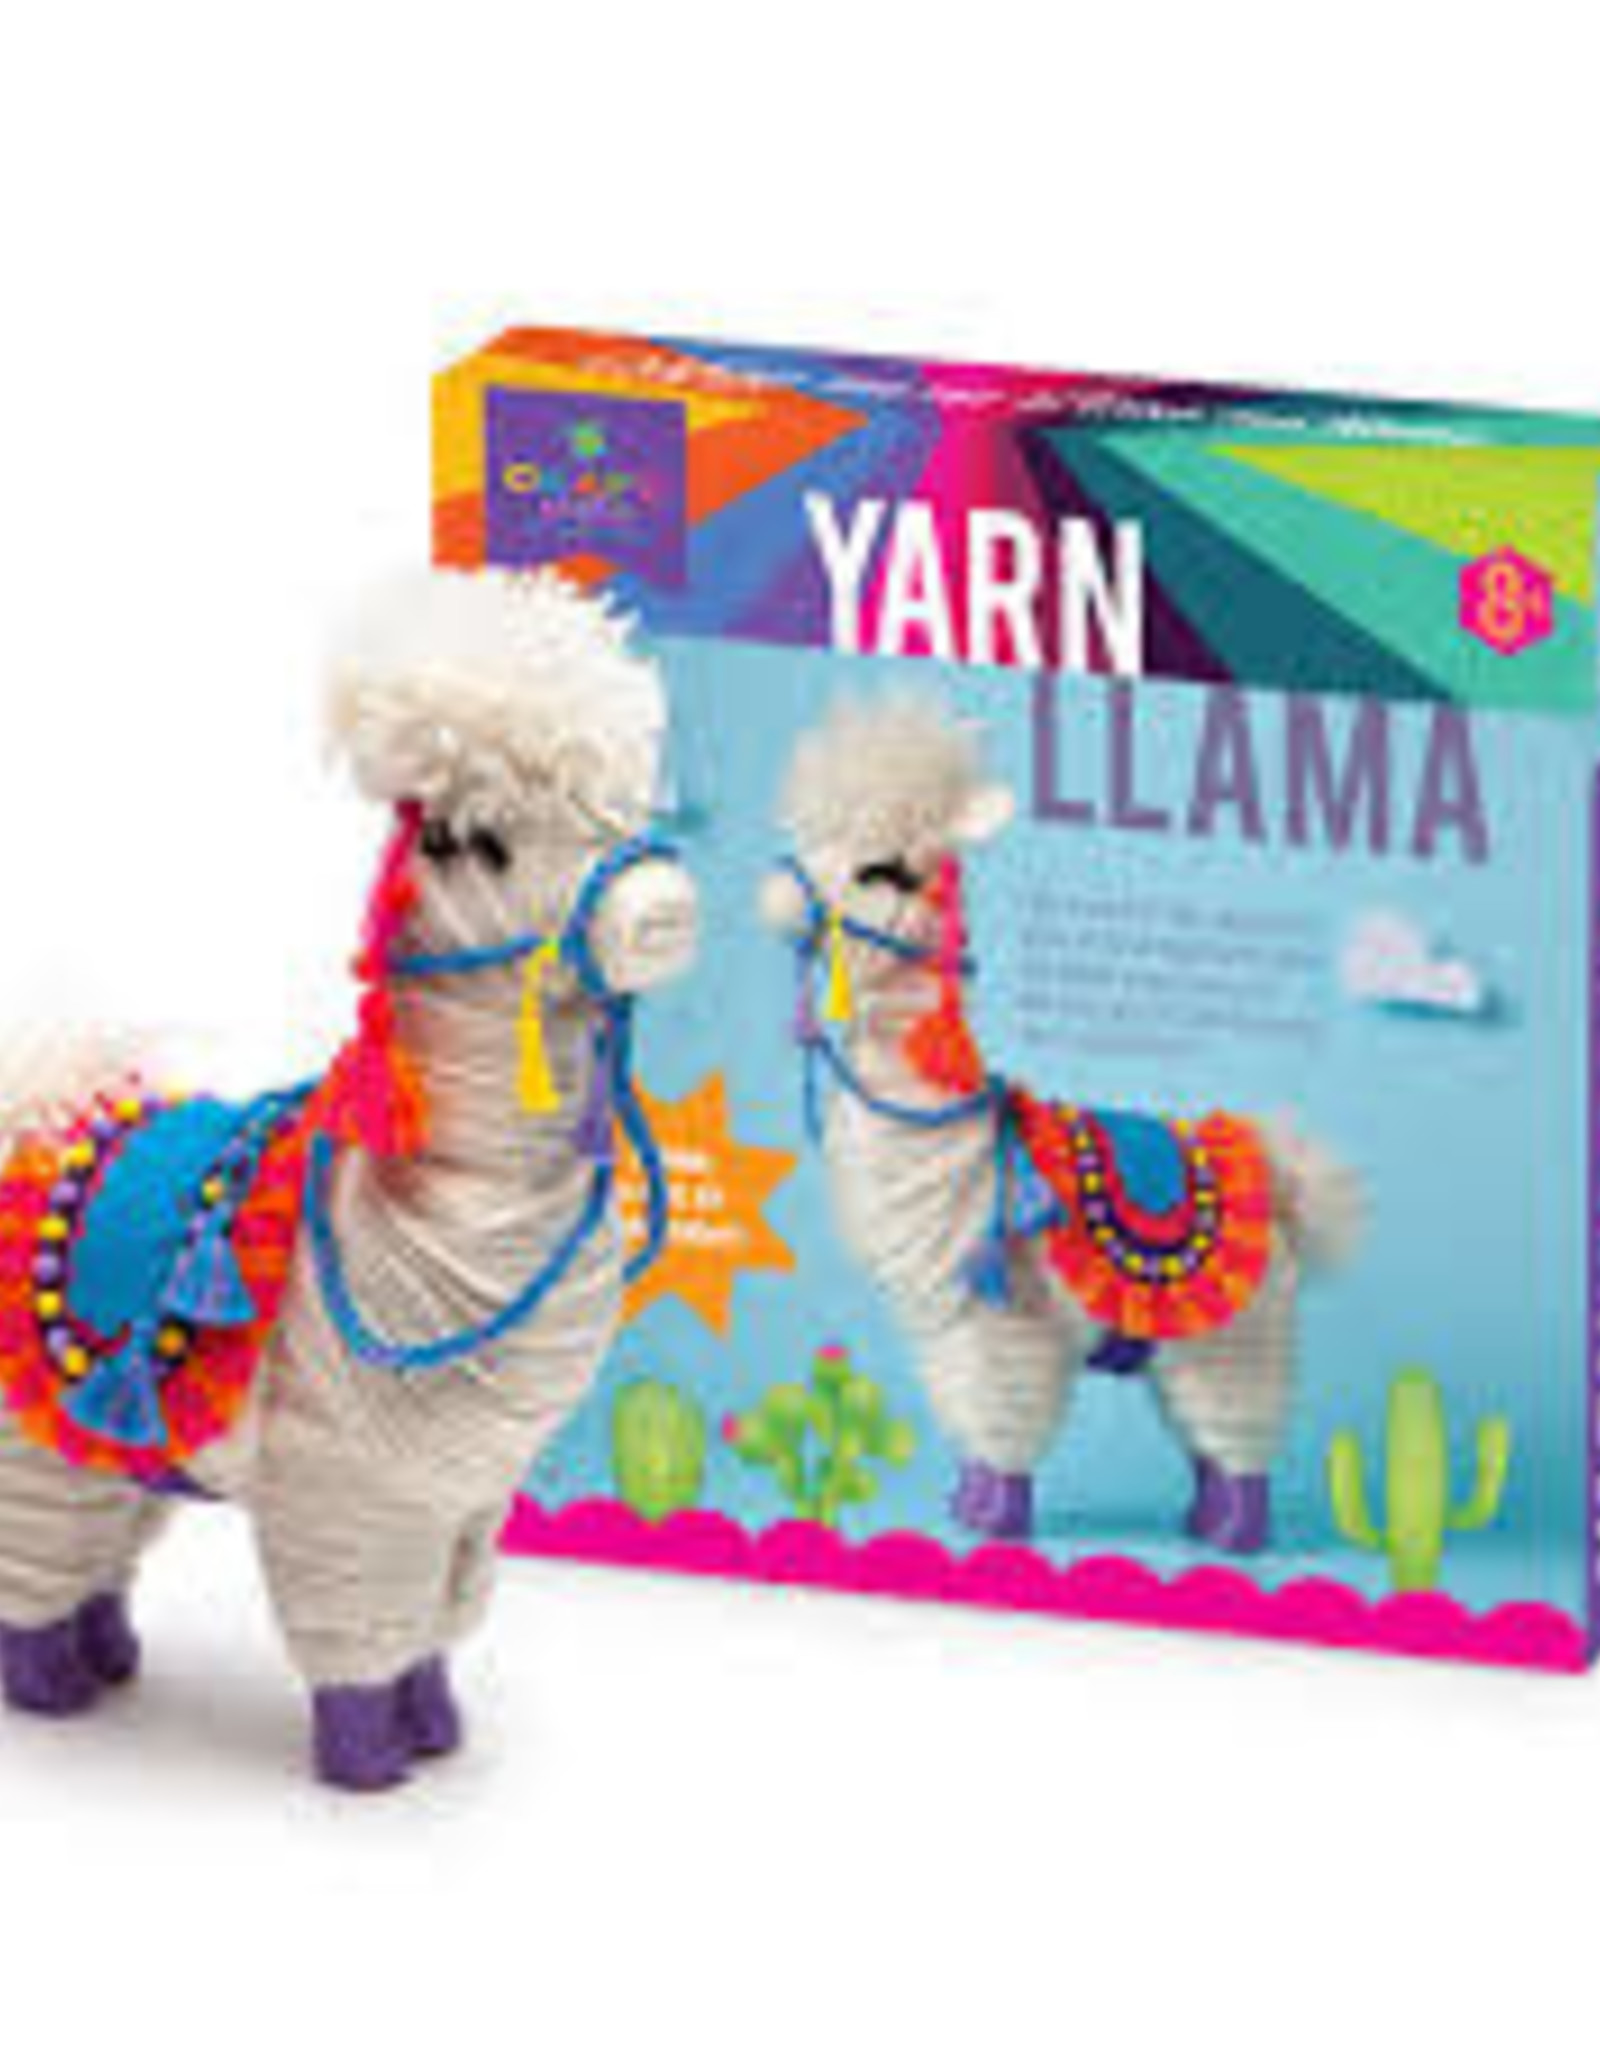 Ann Williams Yarn Llama